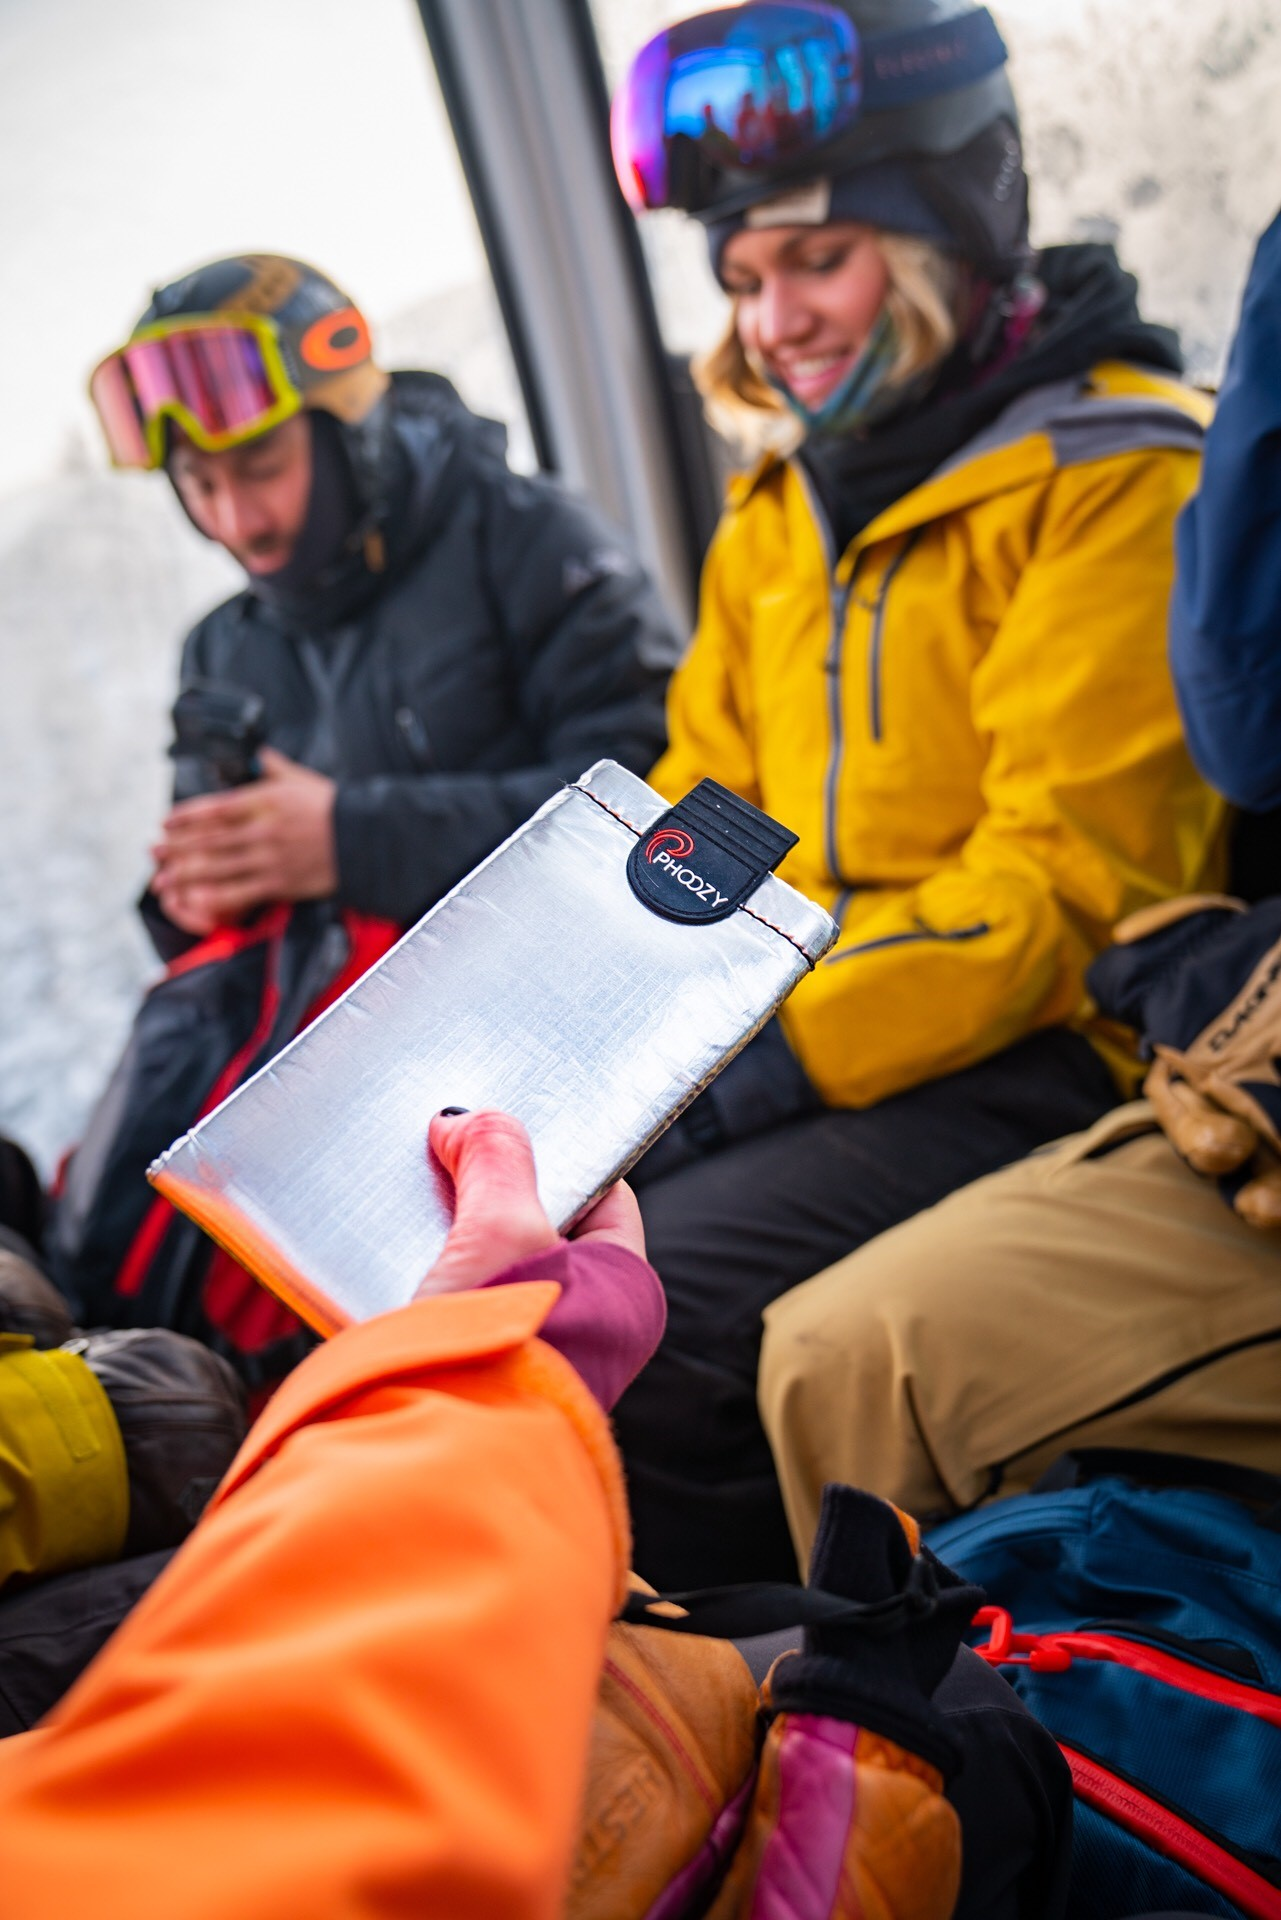 A gondola rider holds up their phone encased in a phoozy case